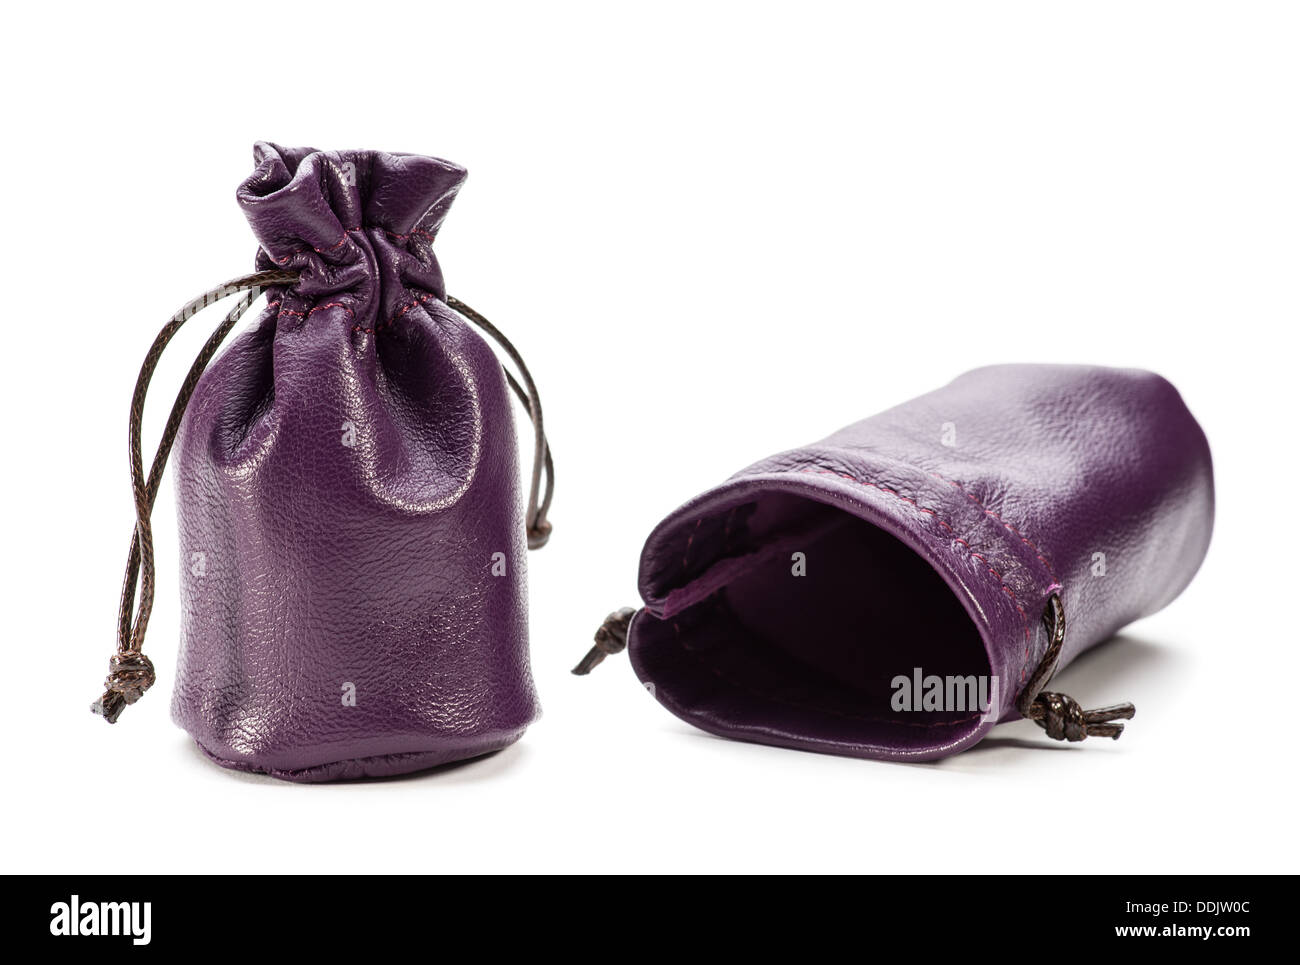 A leather pouch on a white background - Stock Image